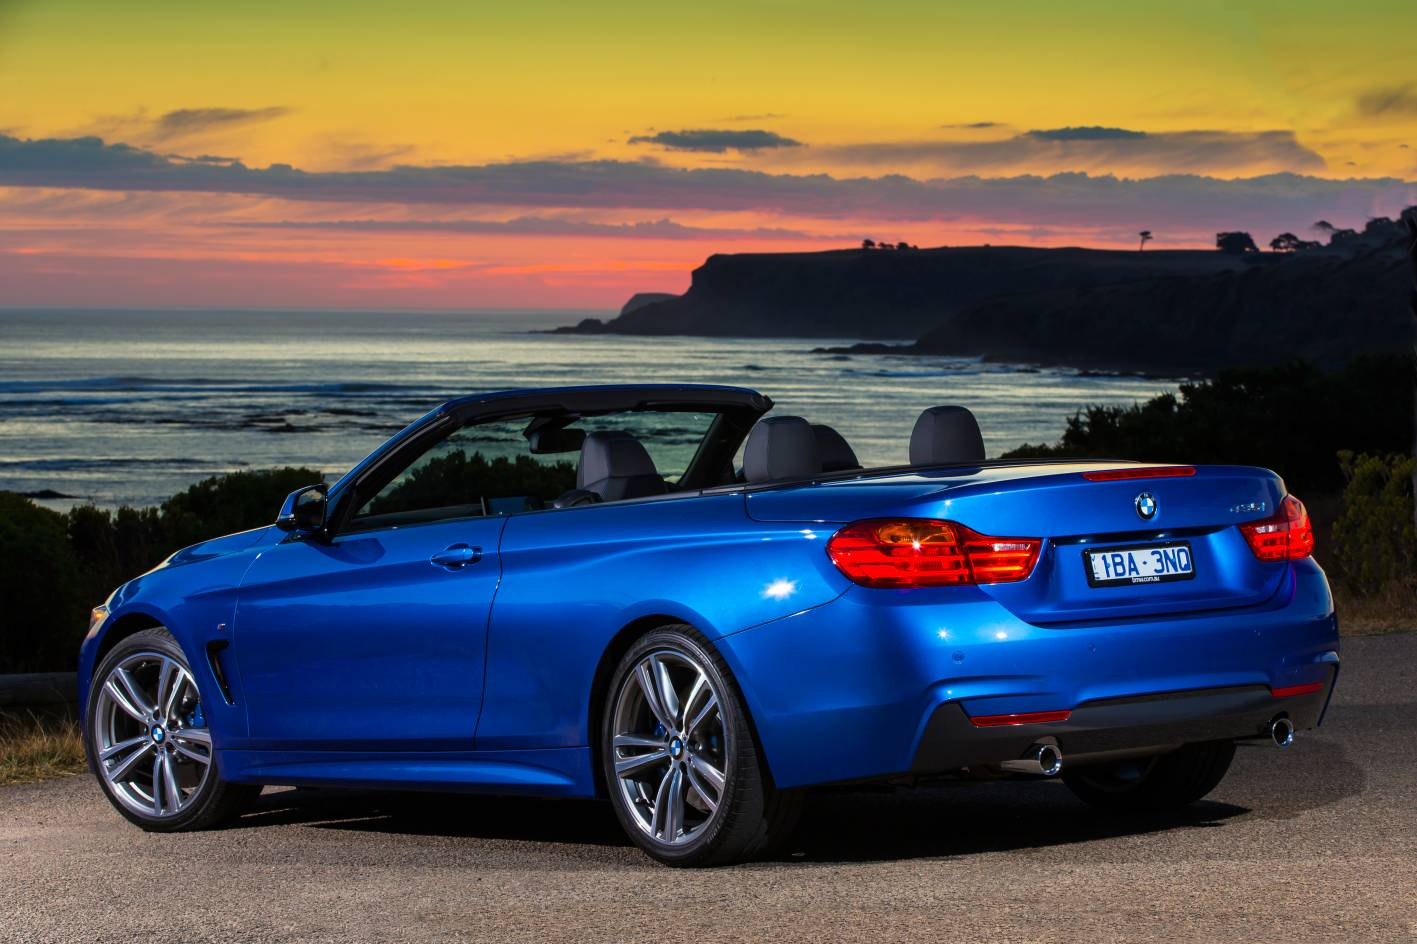 News: 4 Series Convertible Pricing And